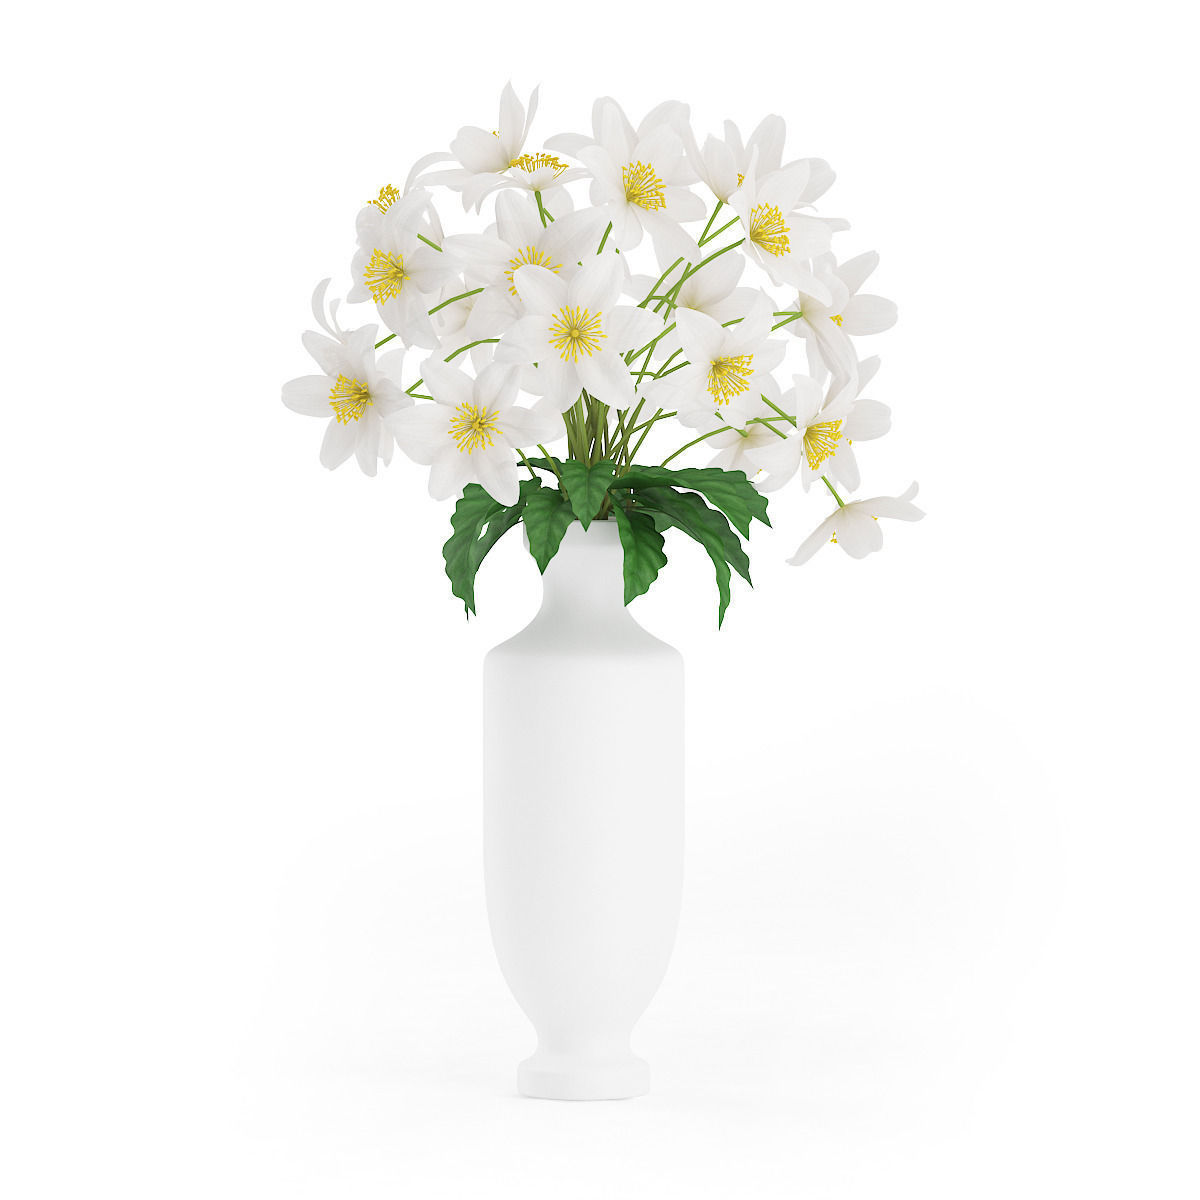 White Flowers in Tall Vase 3D | CGTrader